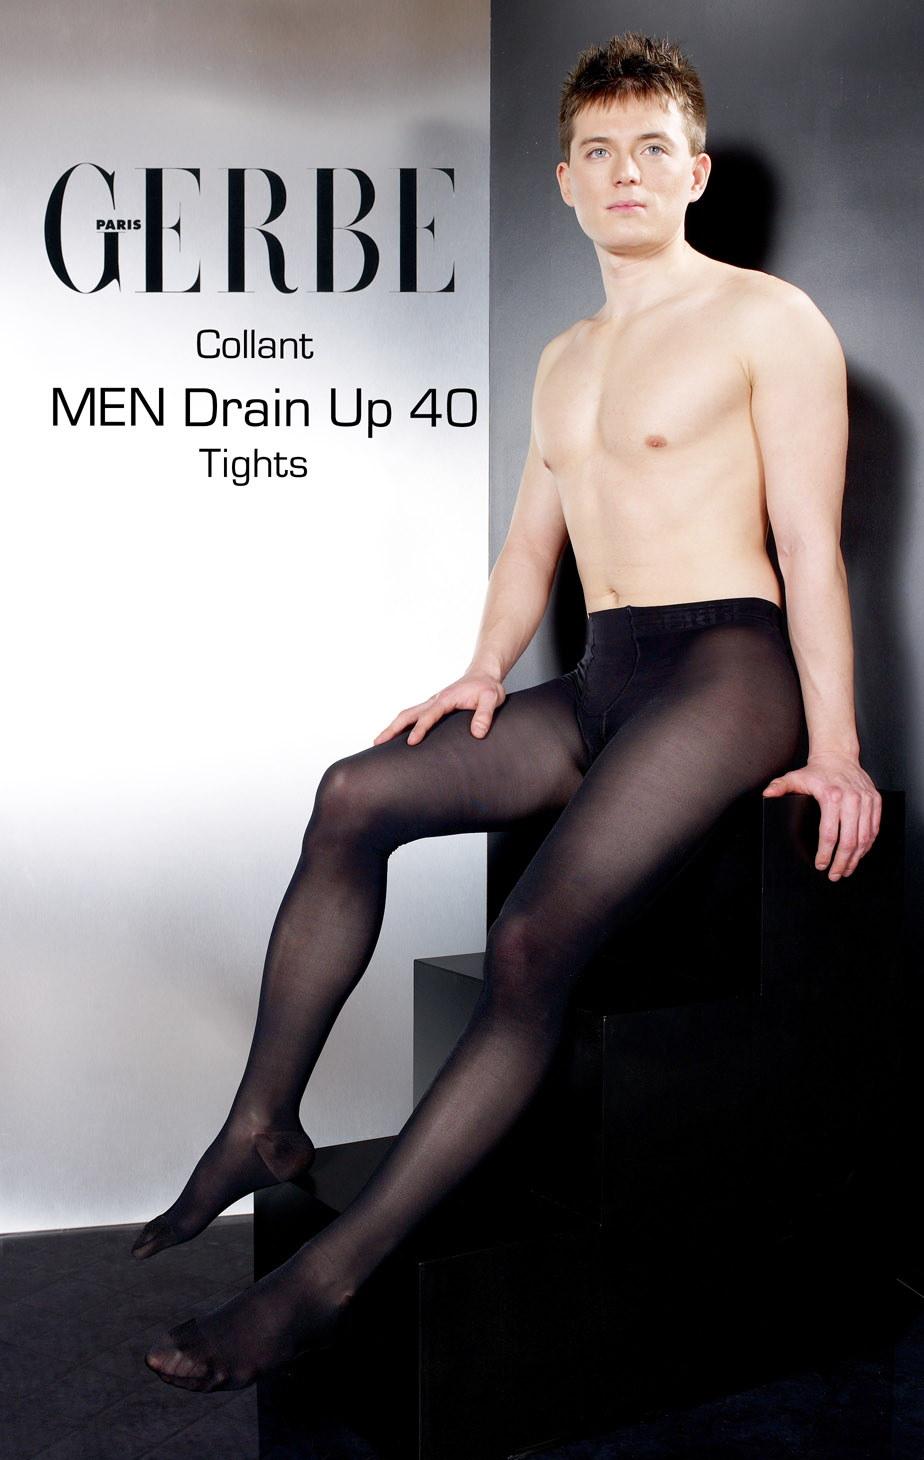 Remarkable, gerbe mens pantyhose excellent